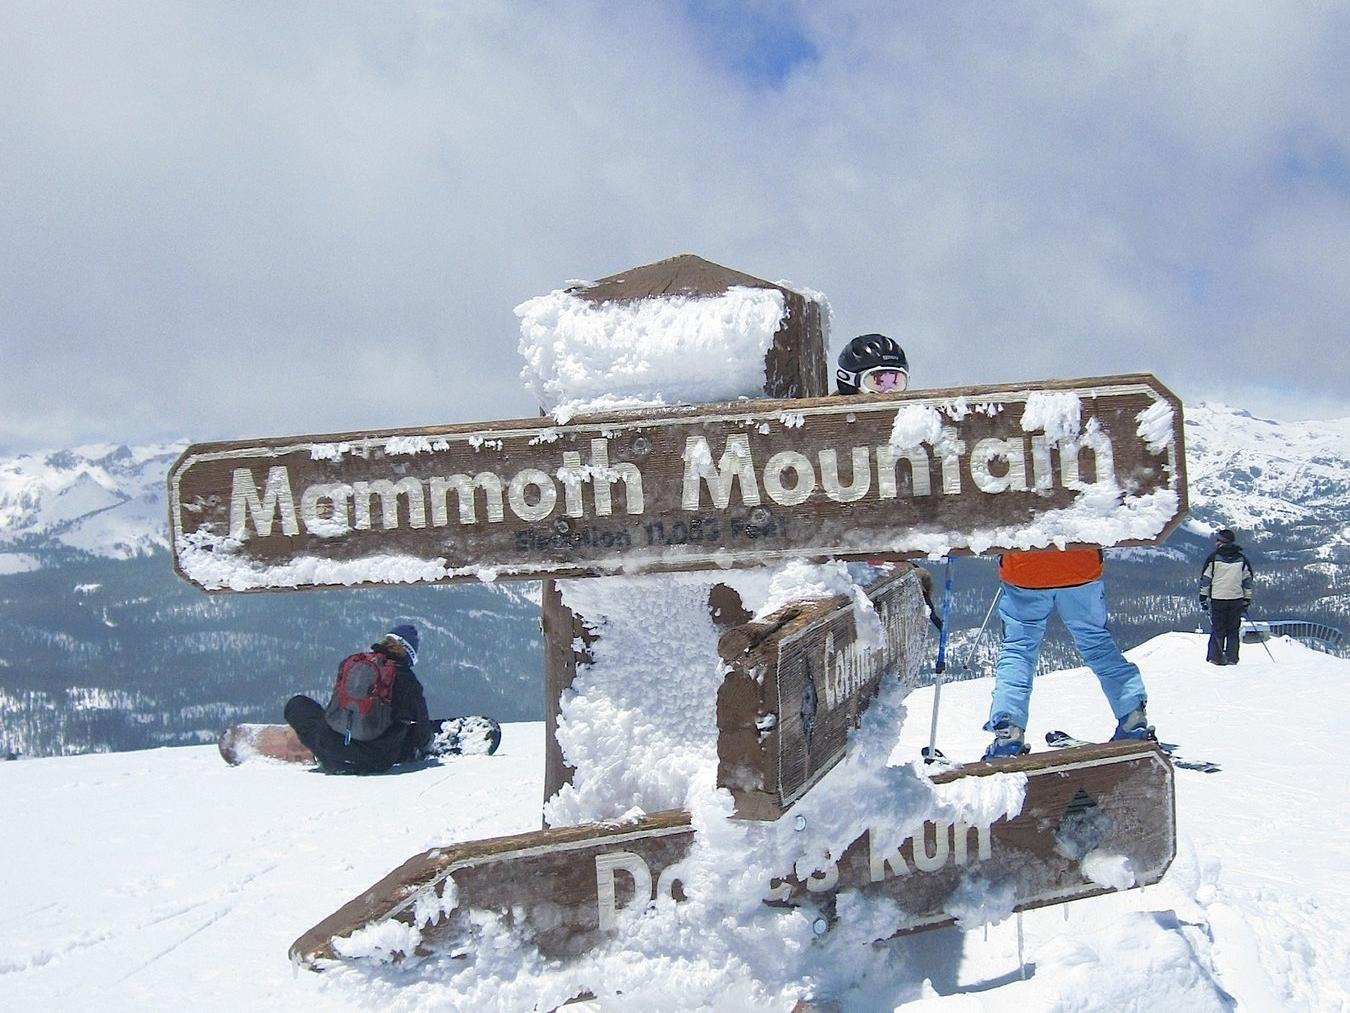 Mammoth Mountain sign covered in snow on top of mountain